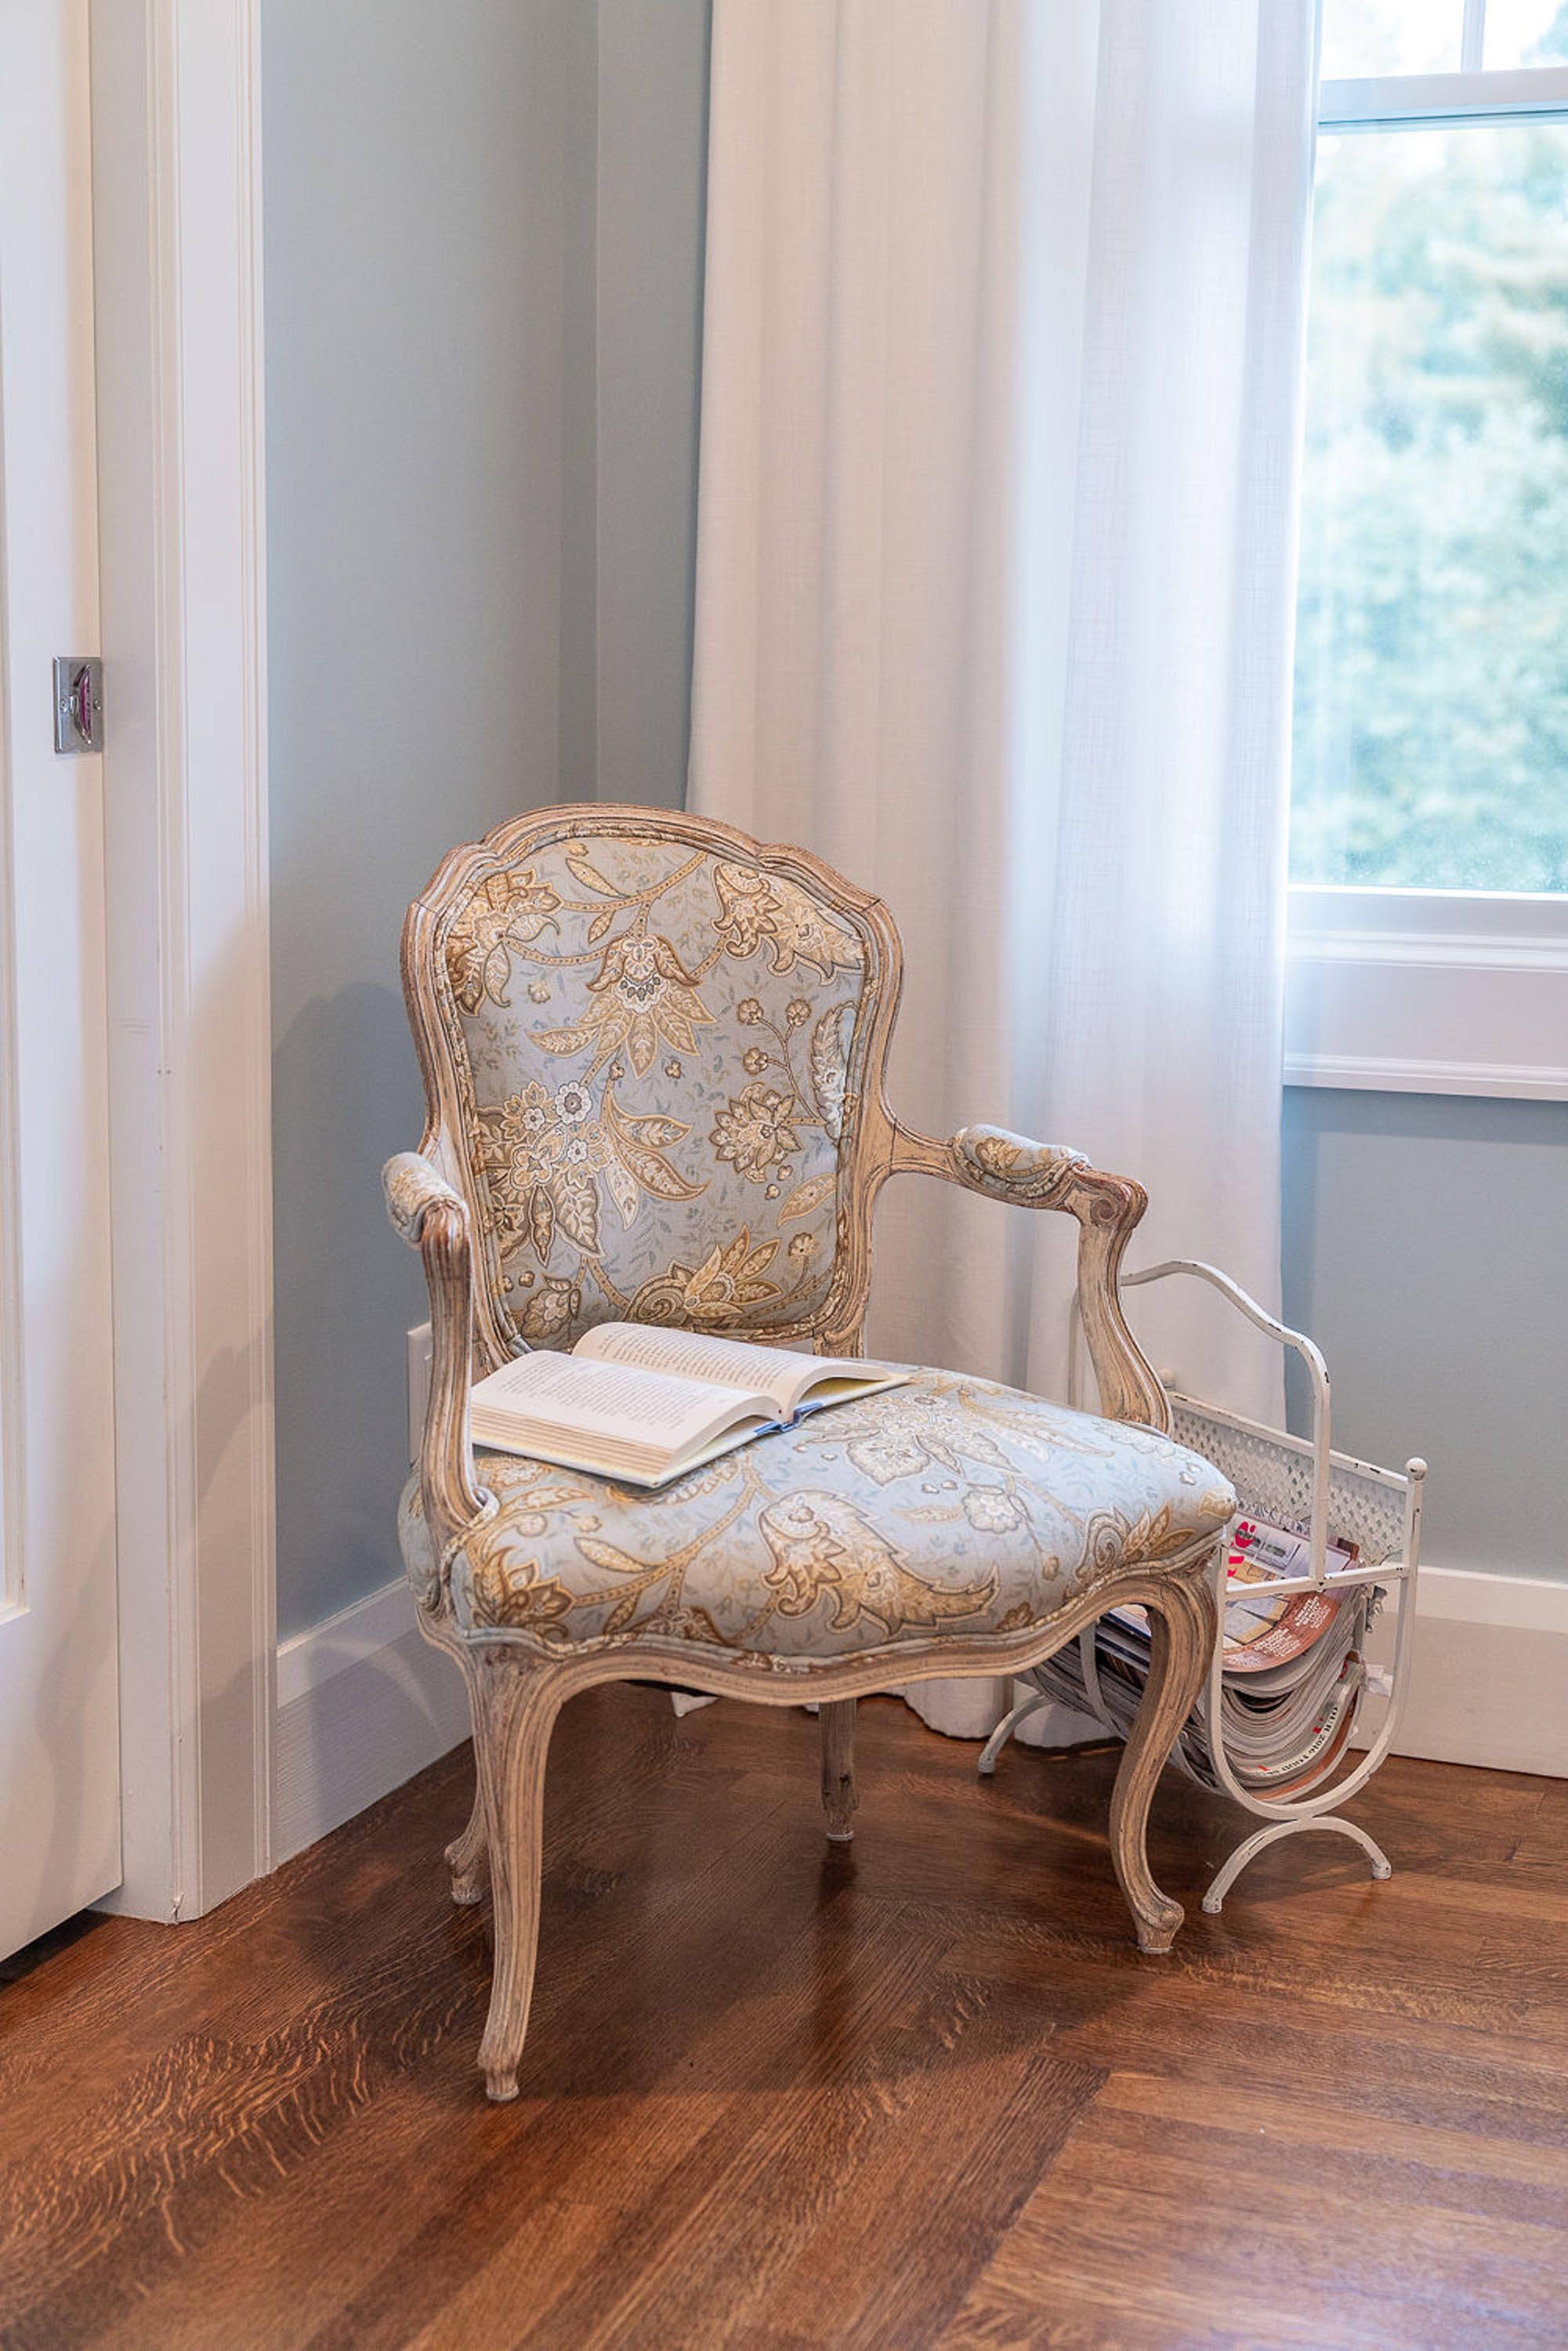 Chair with book, magazine shelves and white curtain